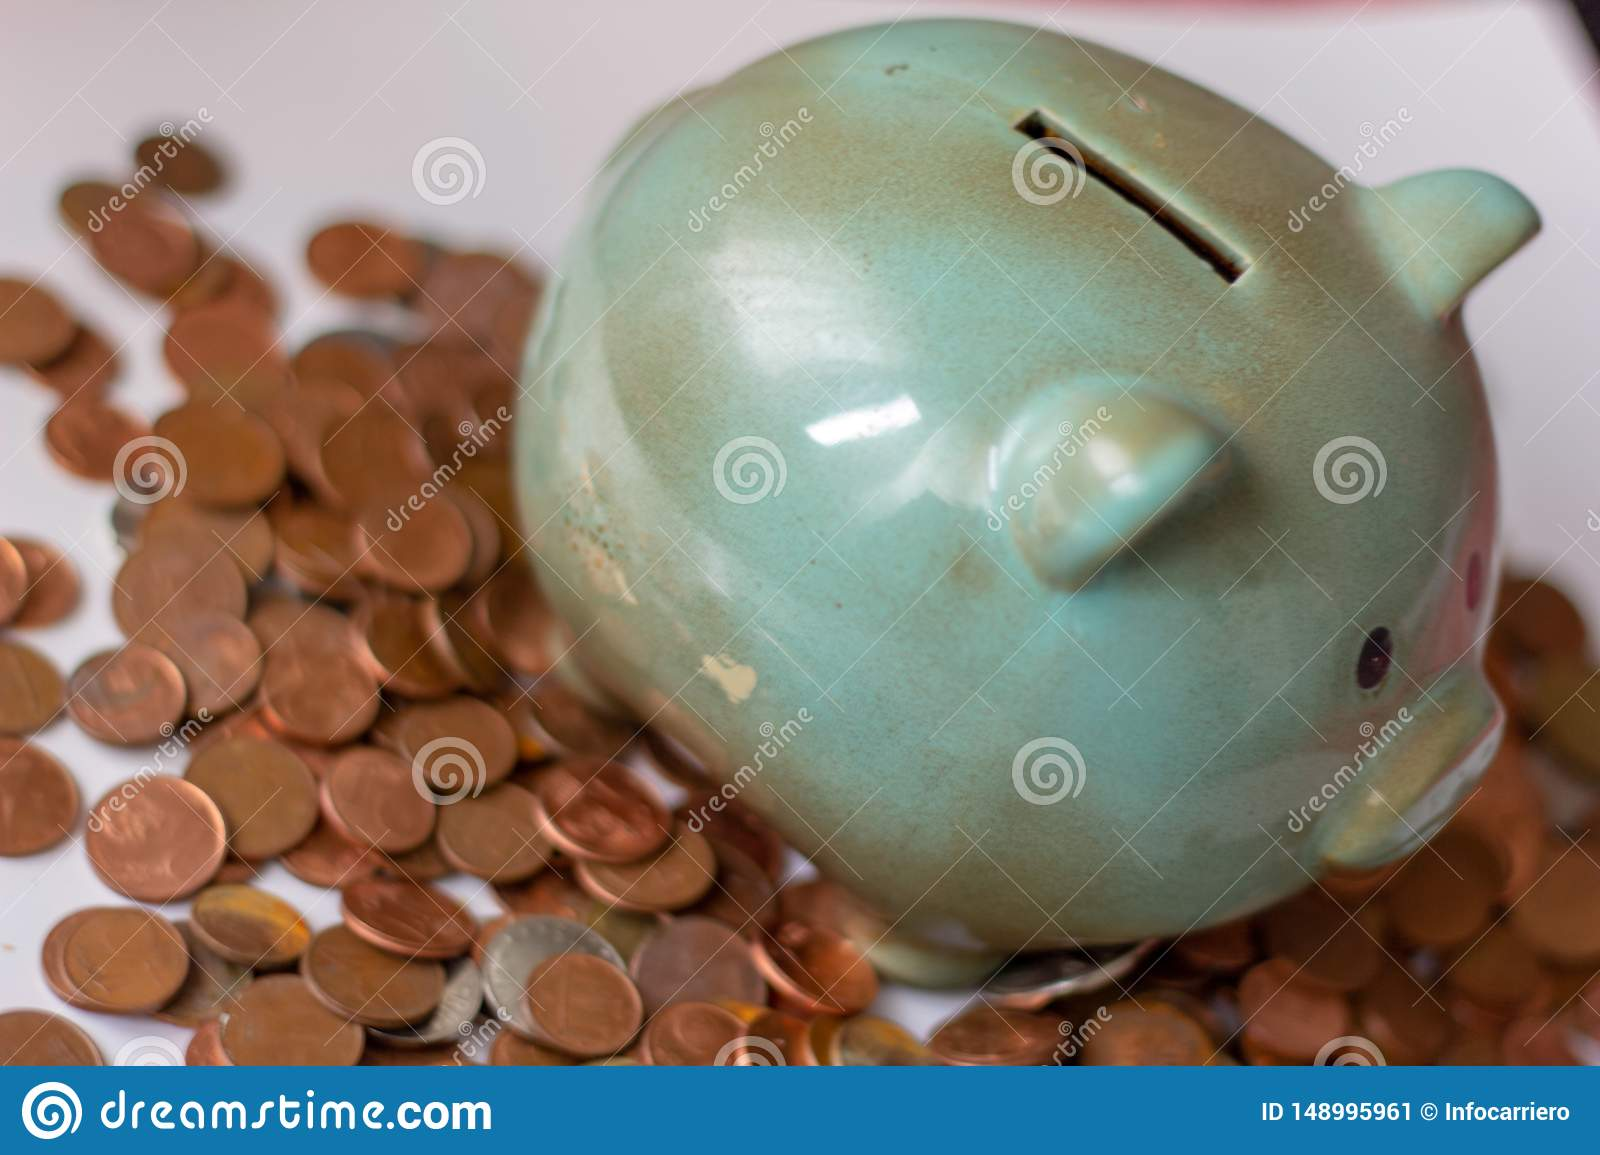 Money, money or cents up to big capitals. money runs the business. a piggy bank, with small coins ... how will it be when the mone